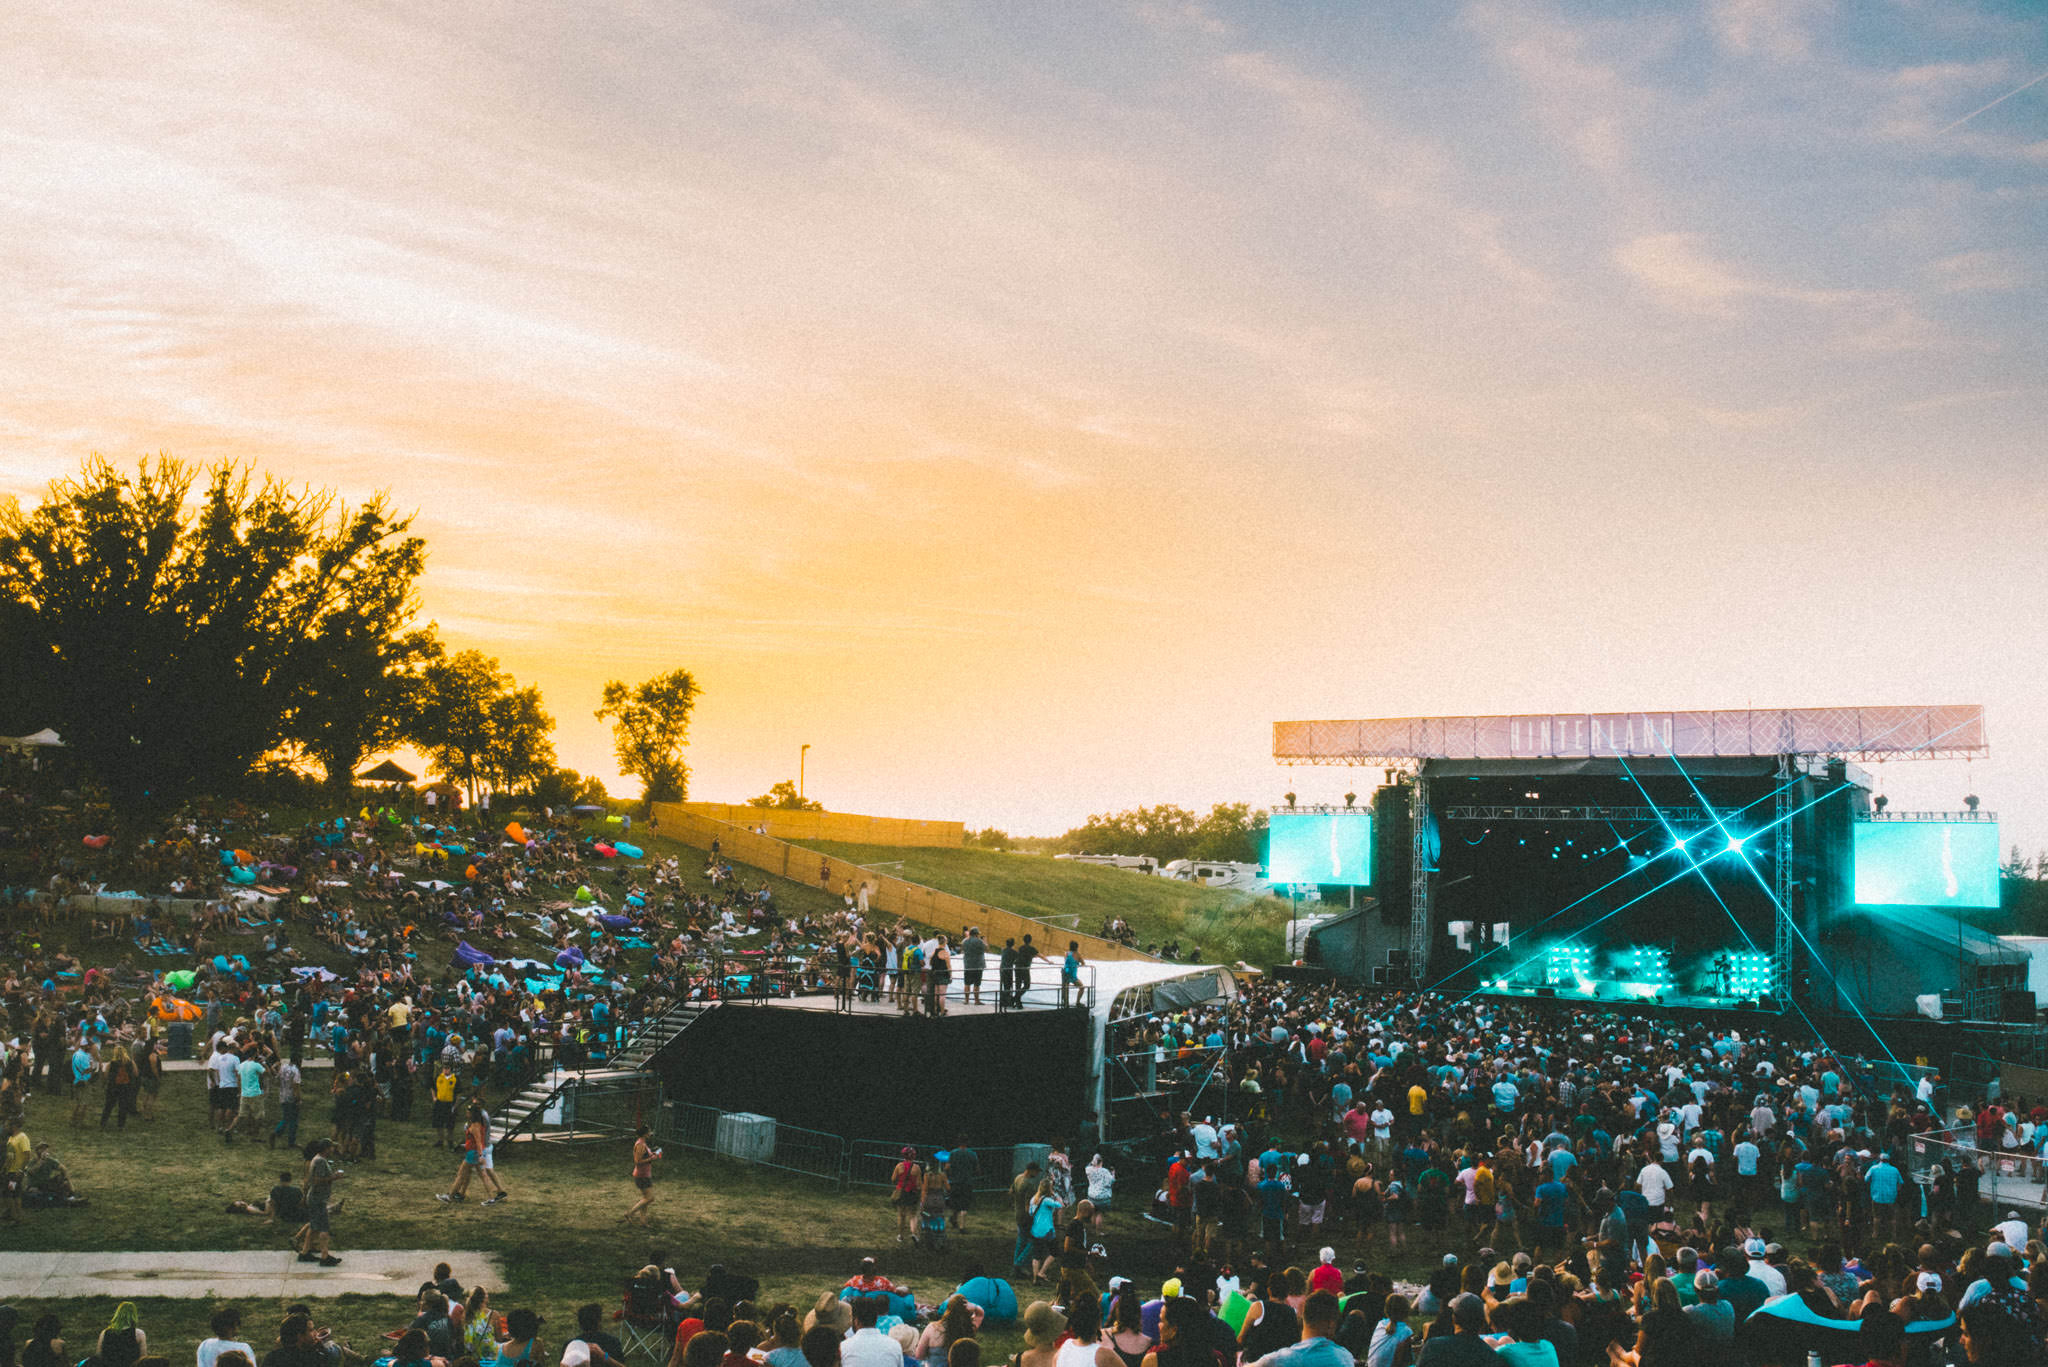 Hinterland Music Festival in Saint Charles, Iowa, live concert of Chvrches with professional light and sound.